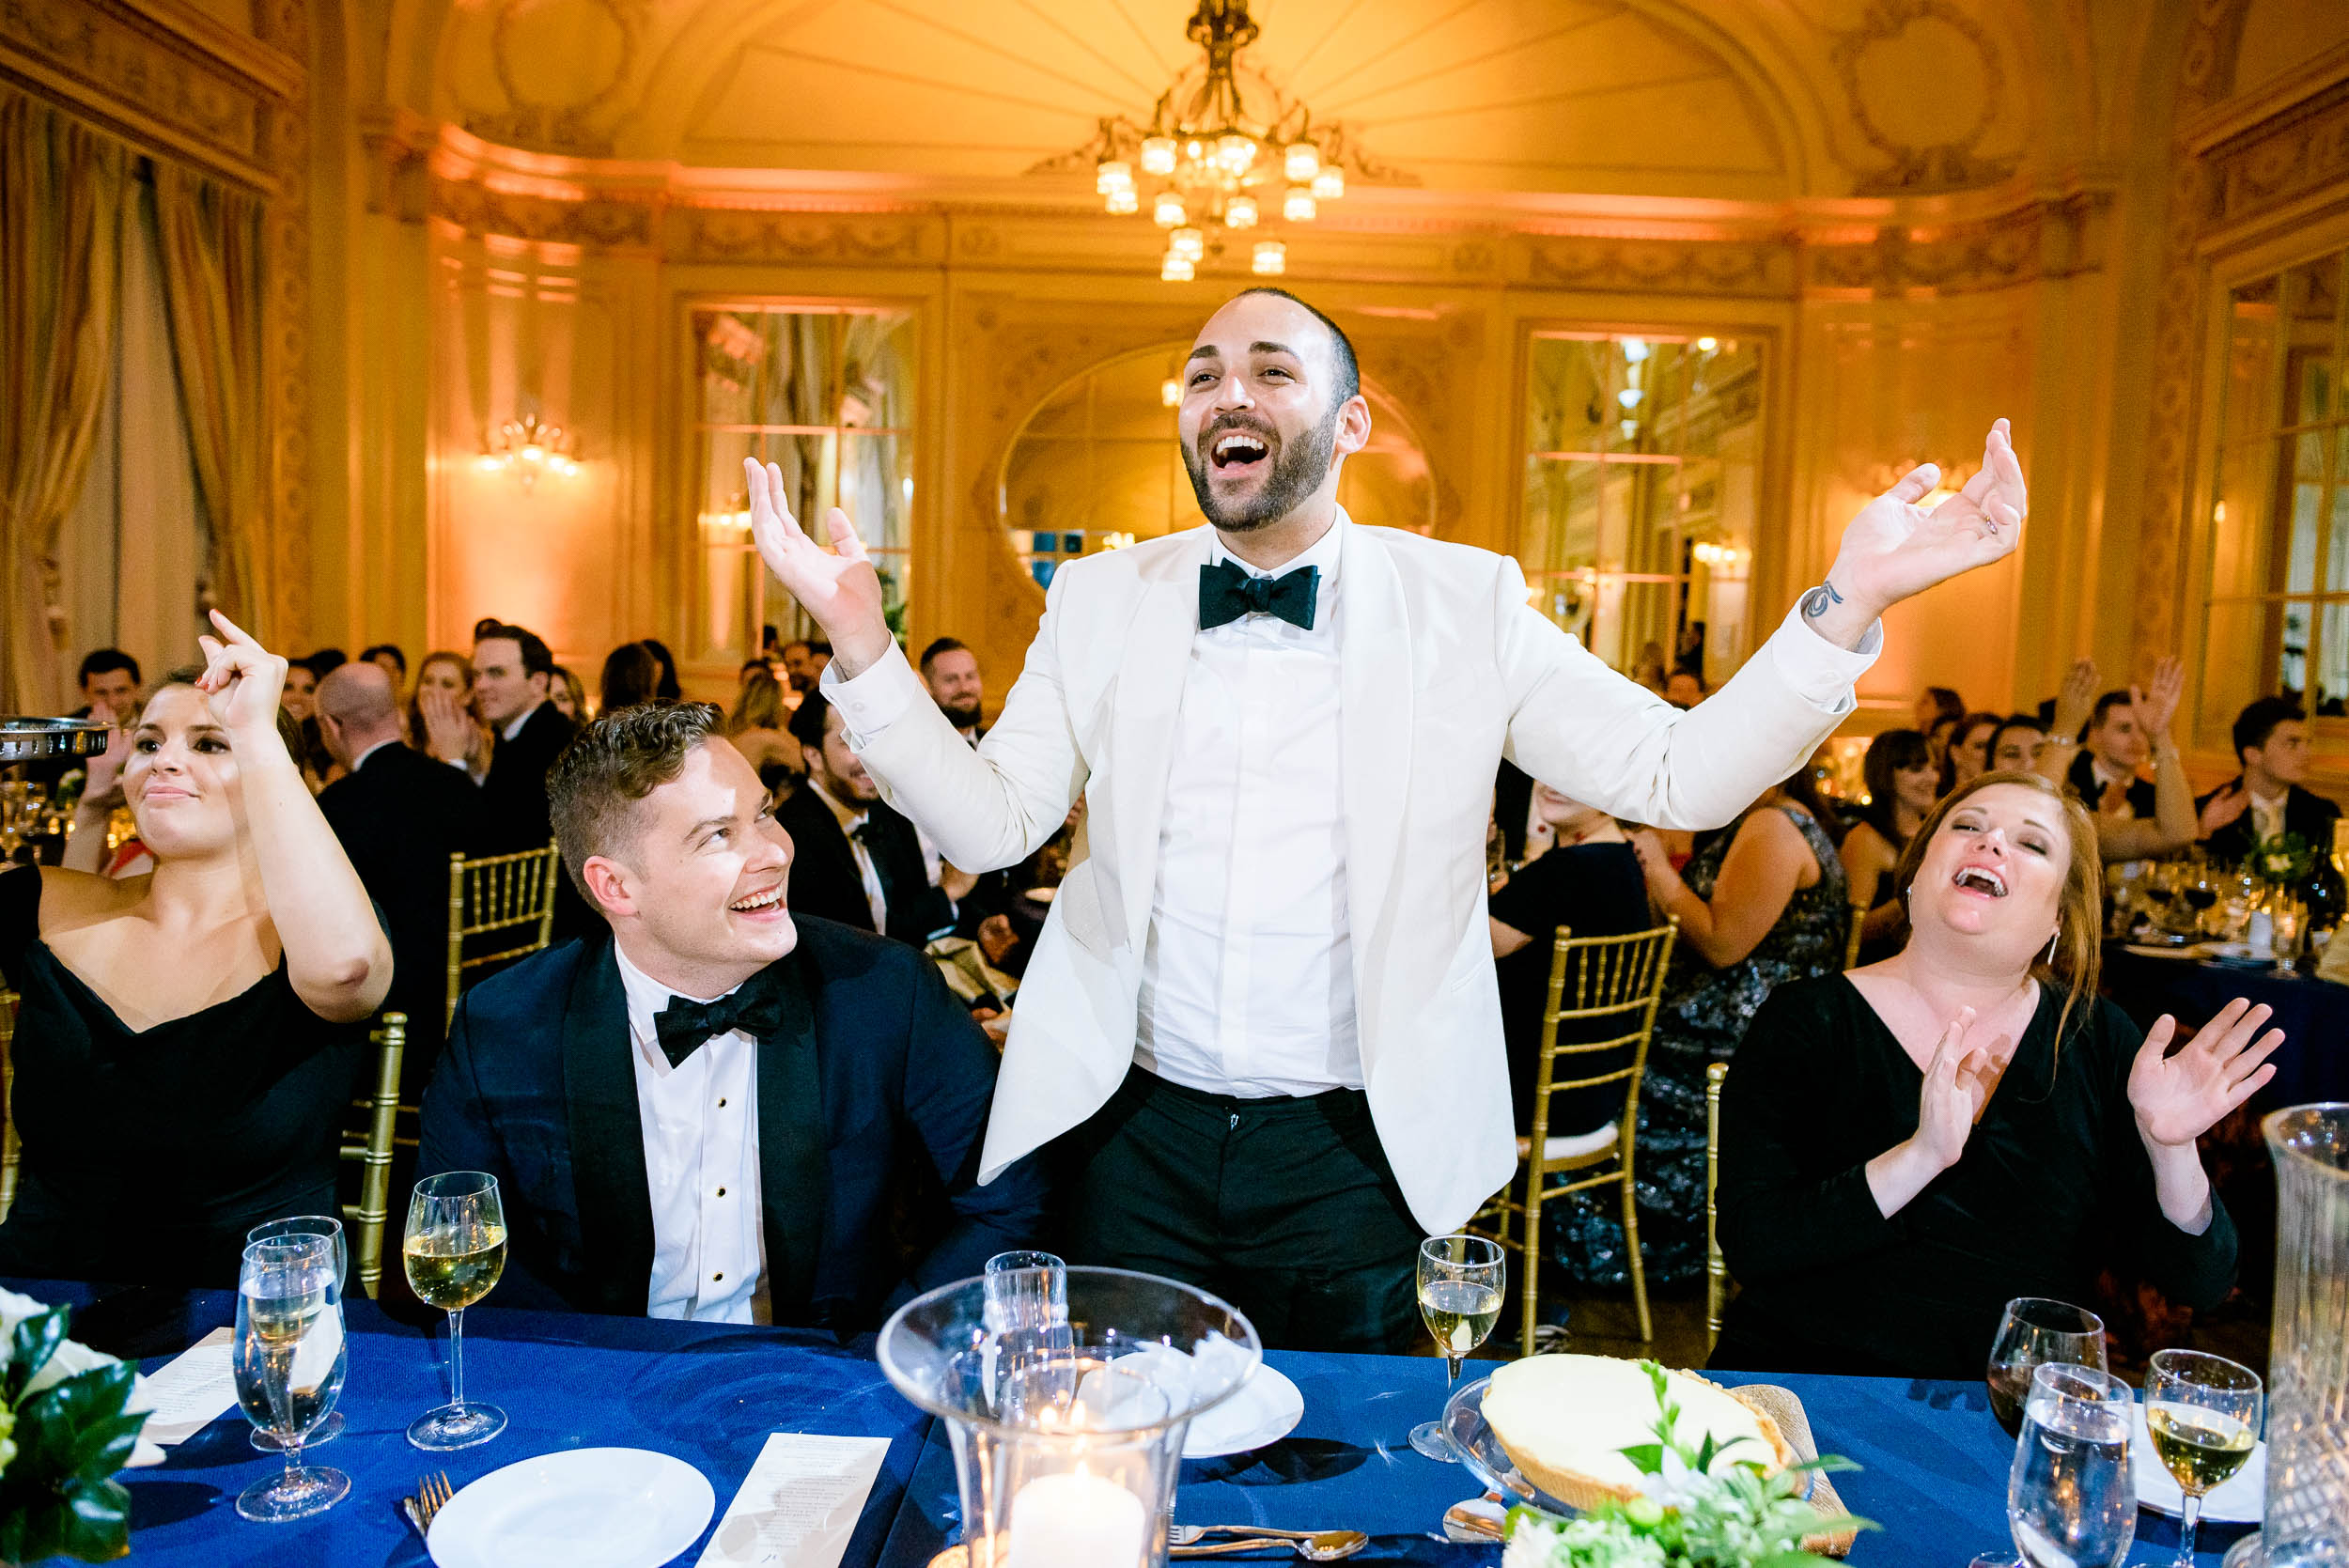 Fun wedding moments at luxurious fall wedding at the Chicago Symphony Center captured by J. Brown Photography. See more wedding ideas at jbrownphotography.com!